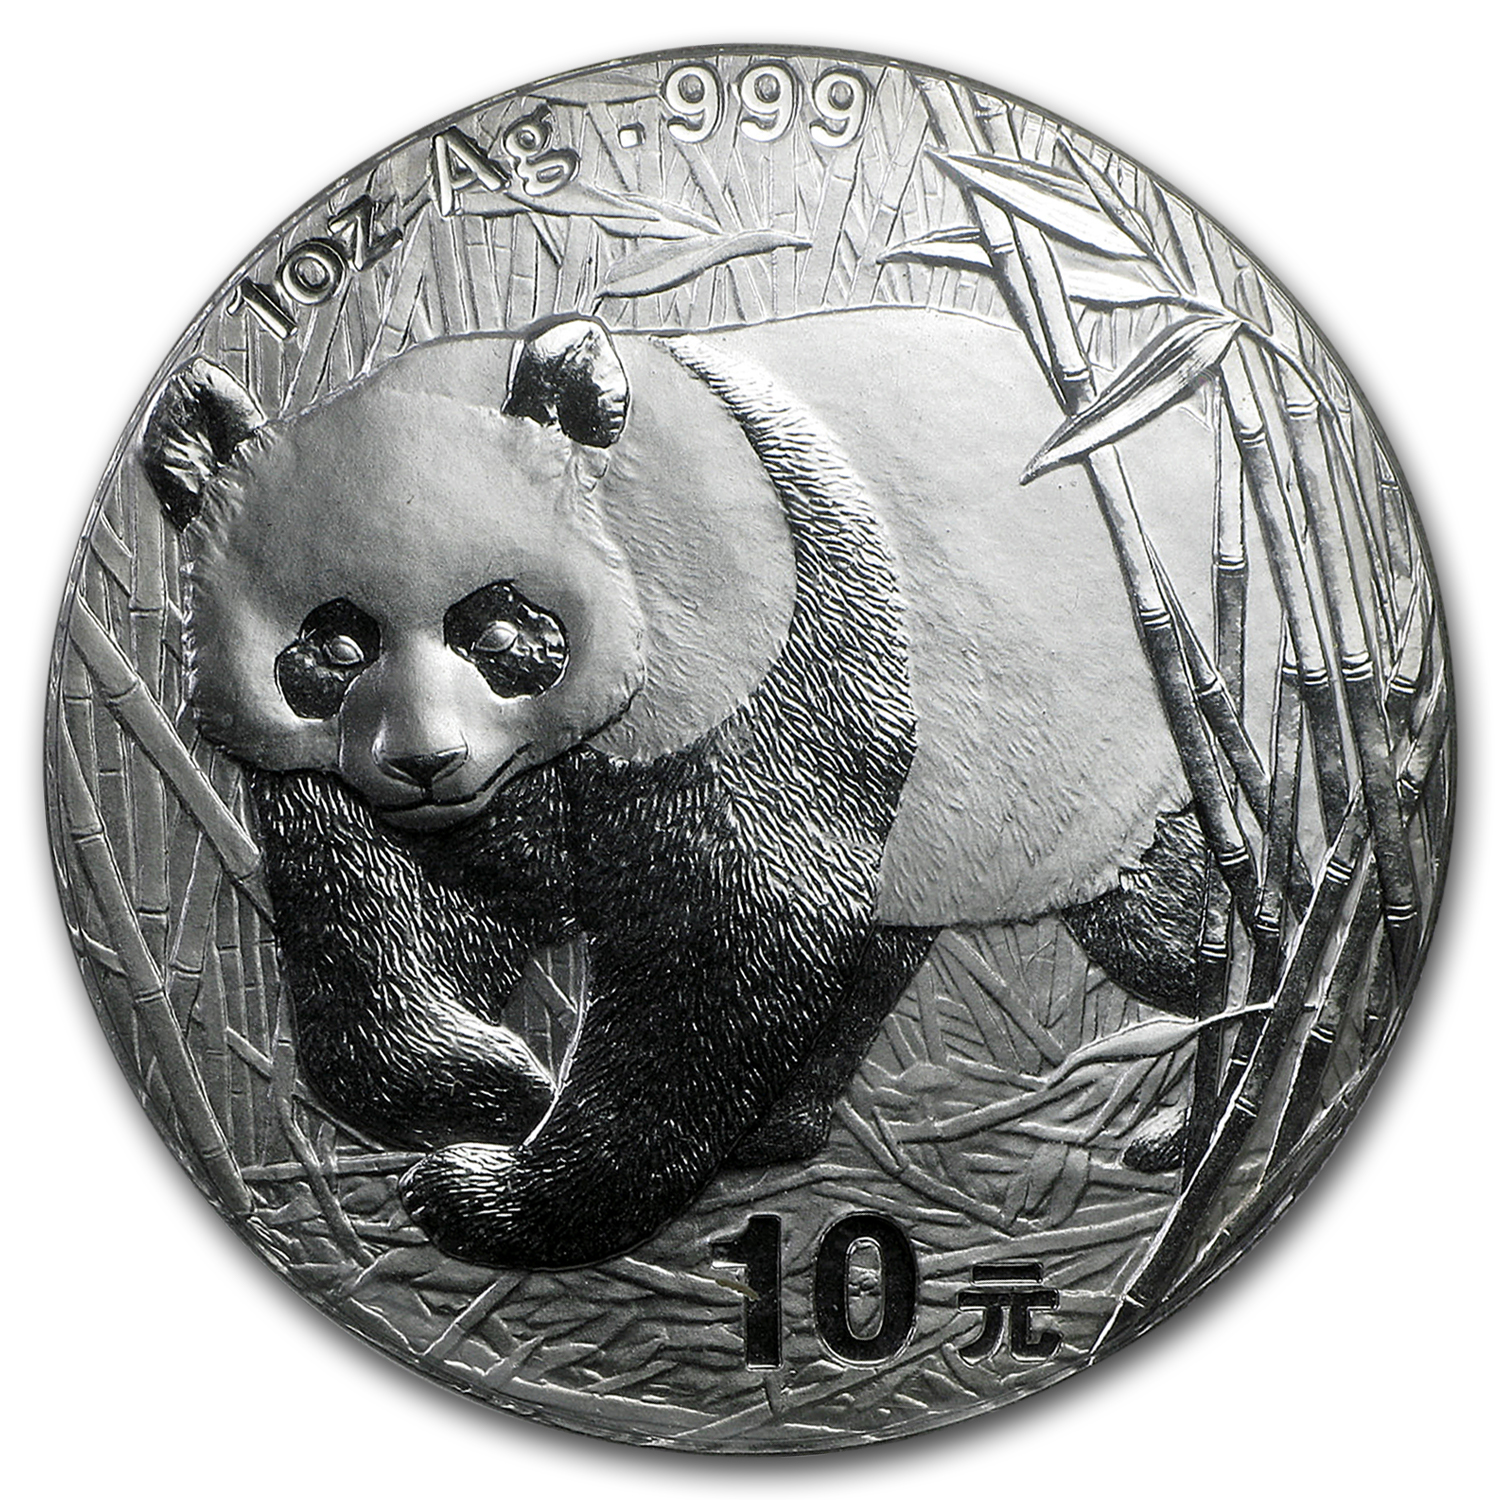 2001 China 1 oz Silver Panda BU (Sealed)